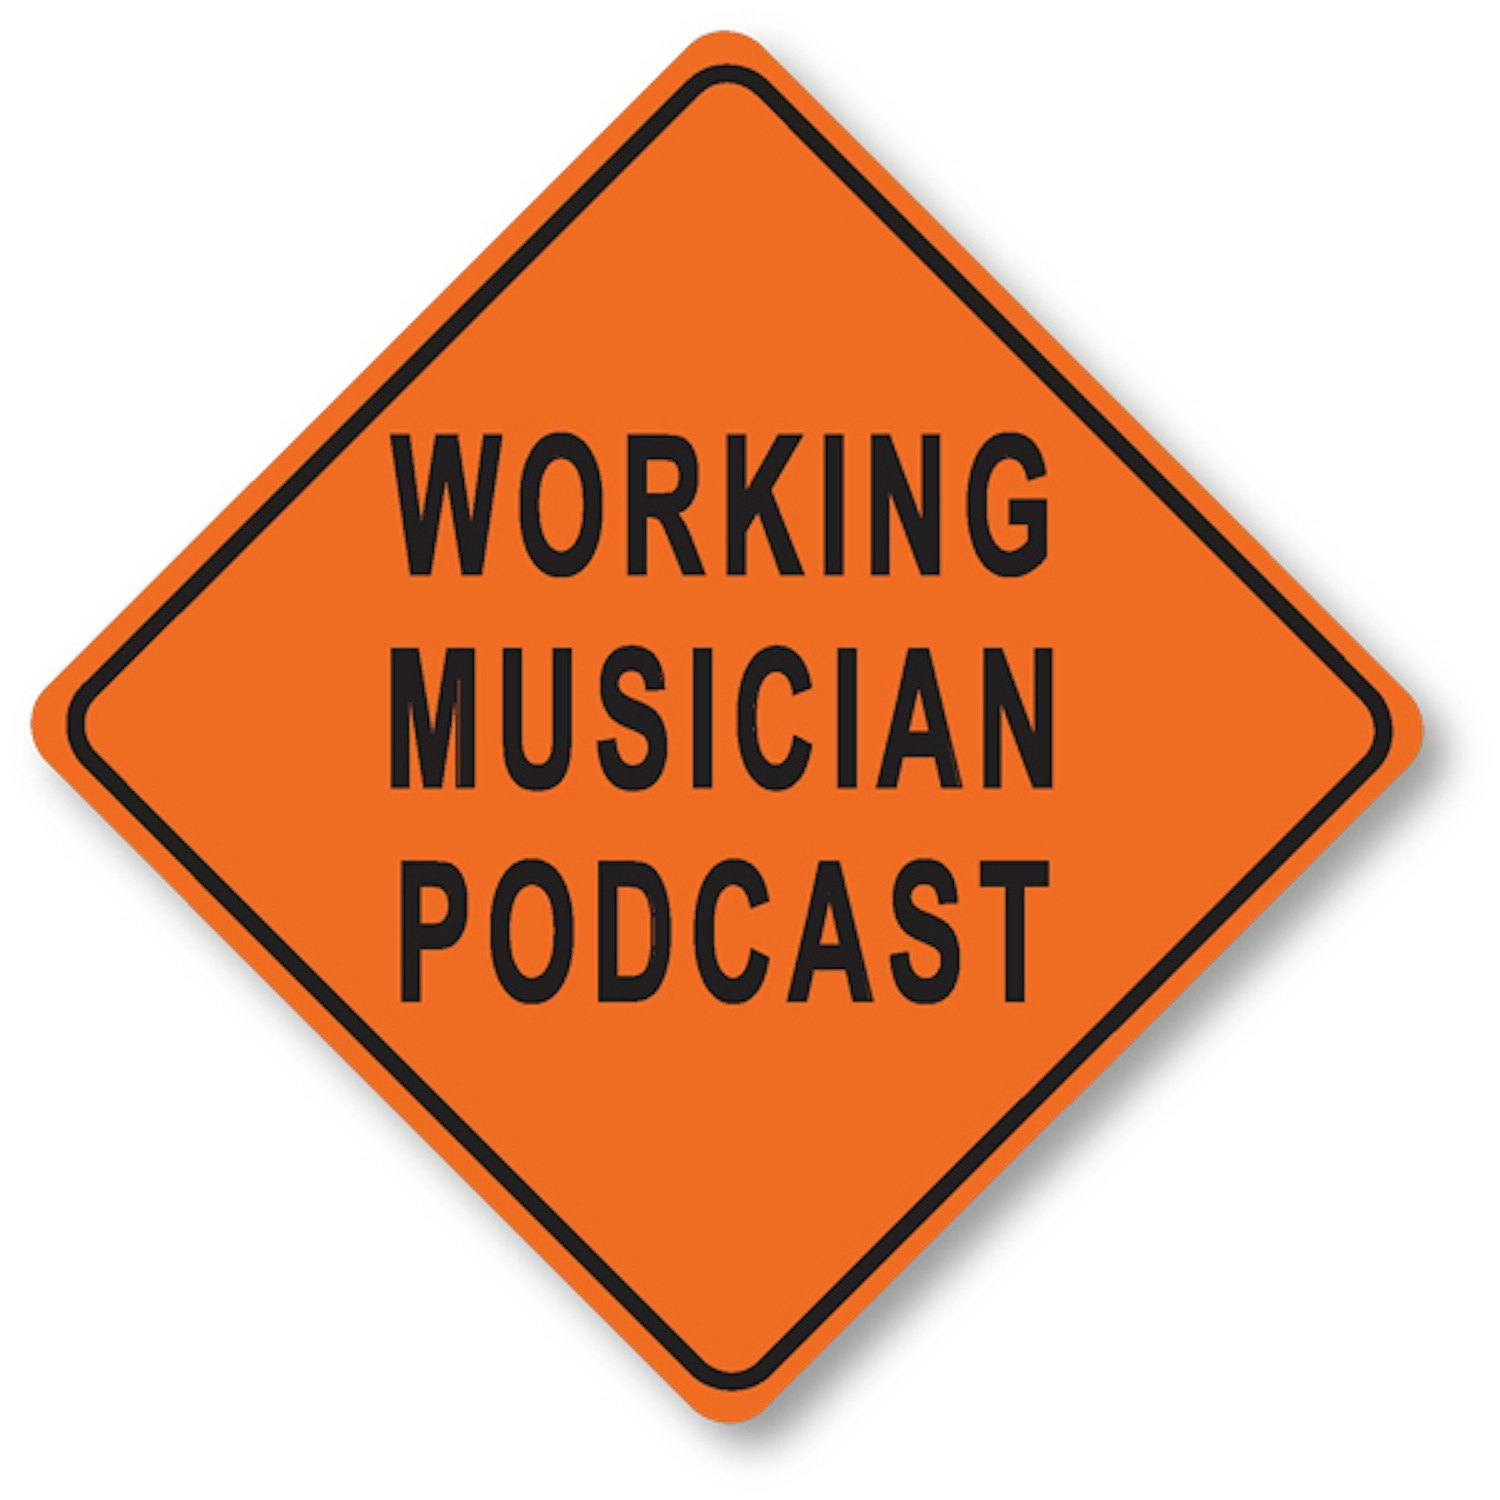 Working Musician Podcast show art